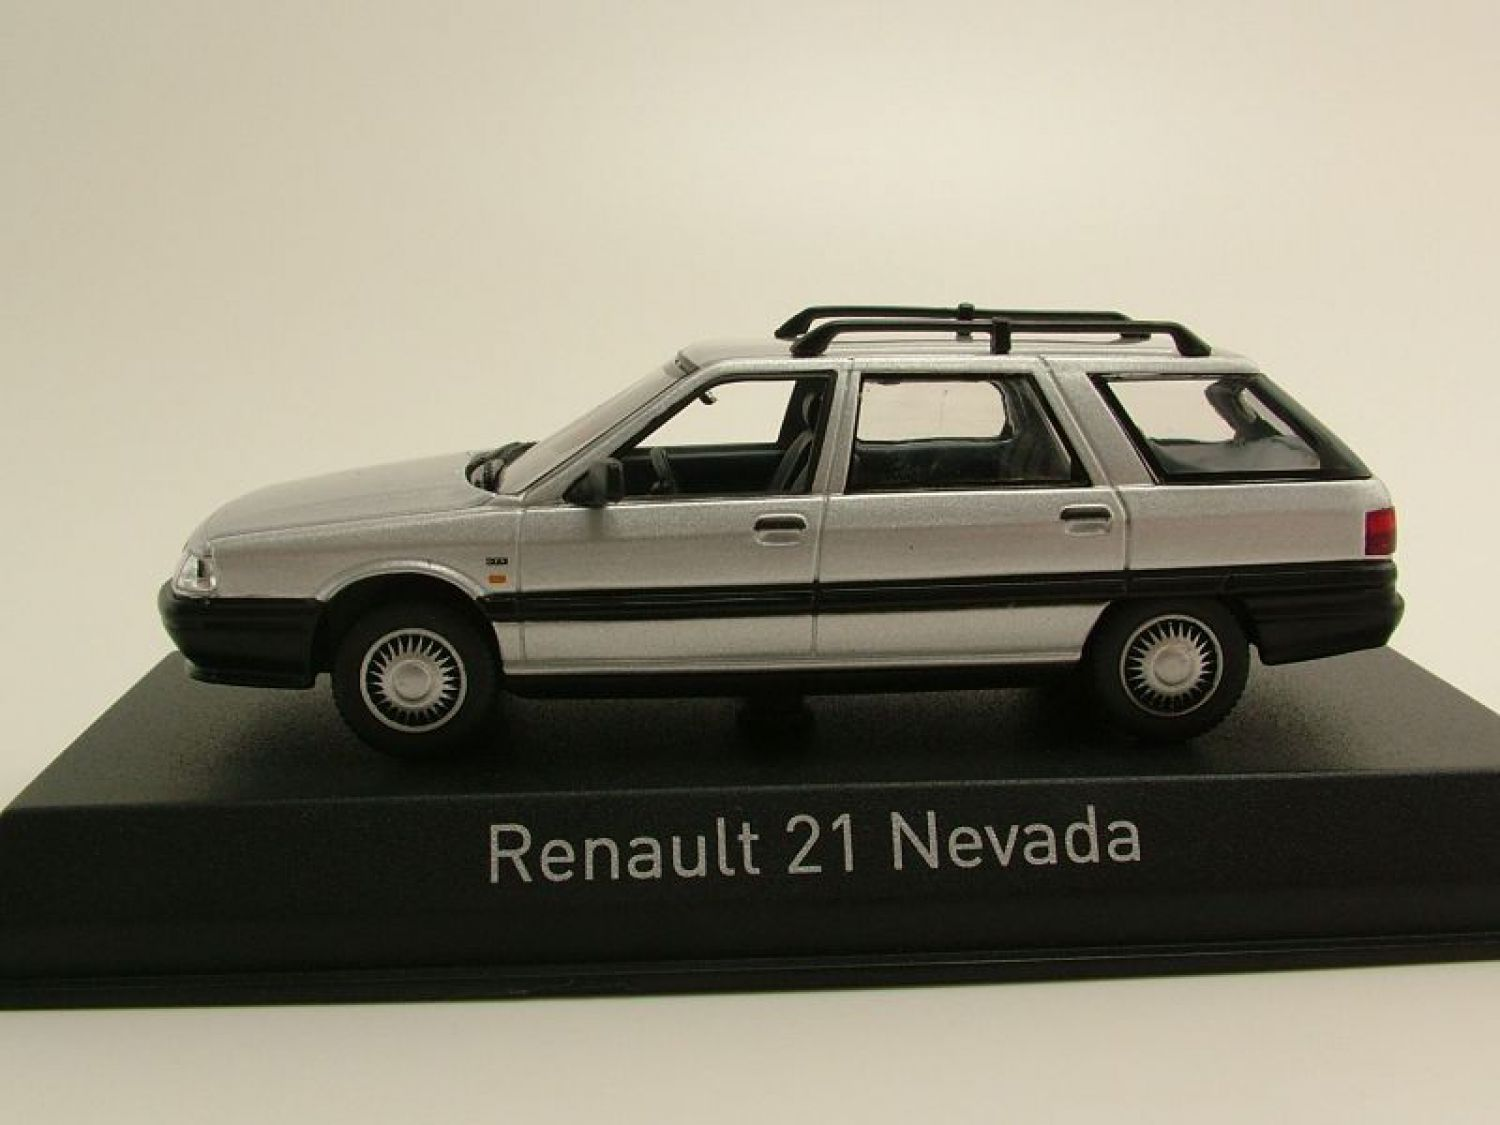 renault 21 nevada kombi 1986 silber modellauto 1 43 norev ebay. Black Bedroom Furniture Sets. Home Design Ideas